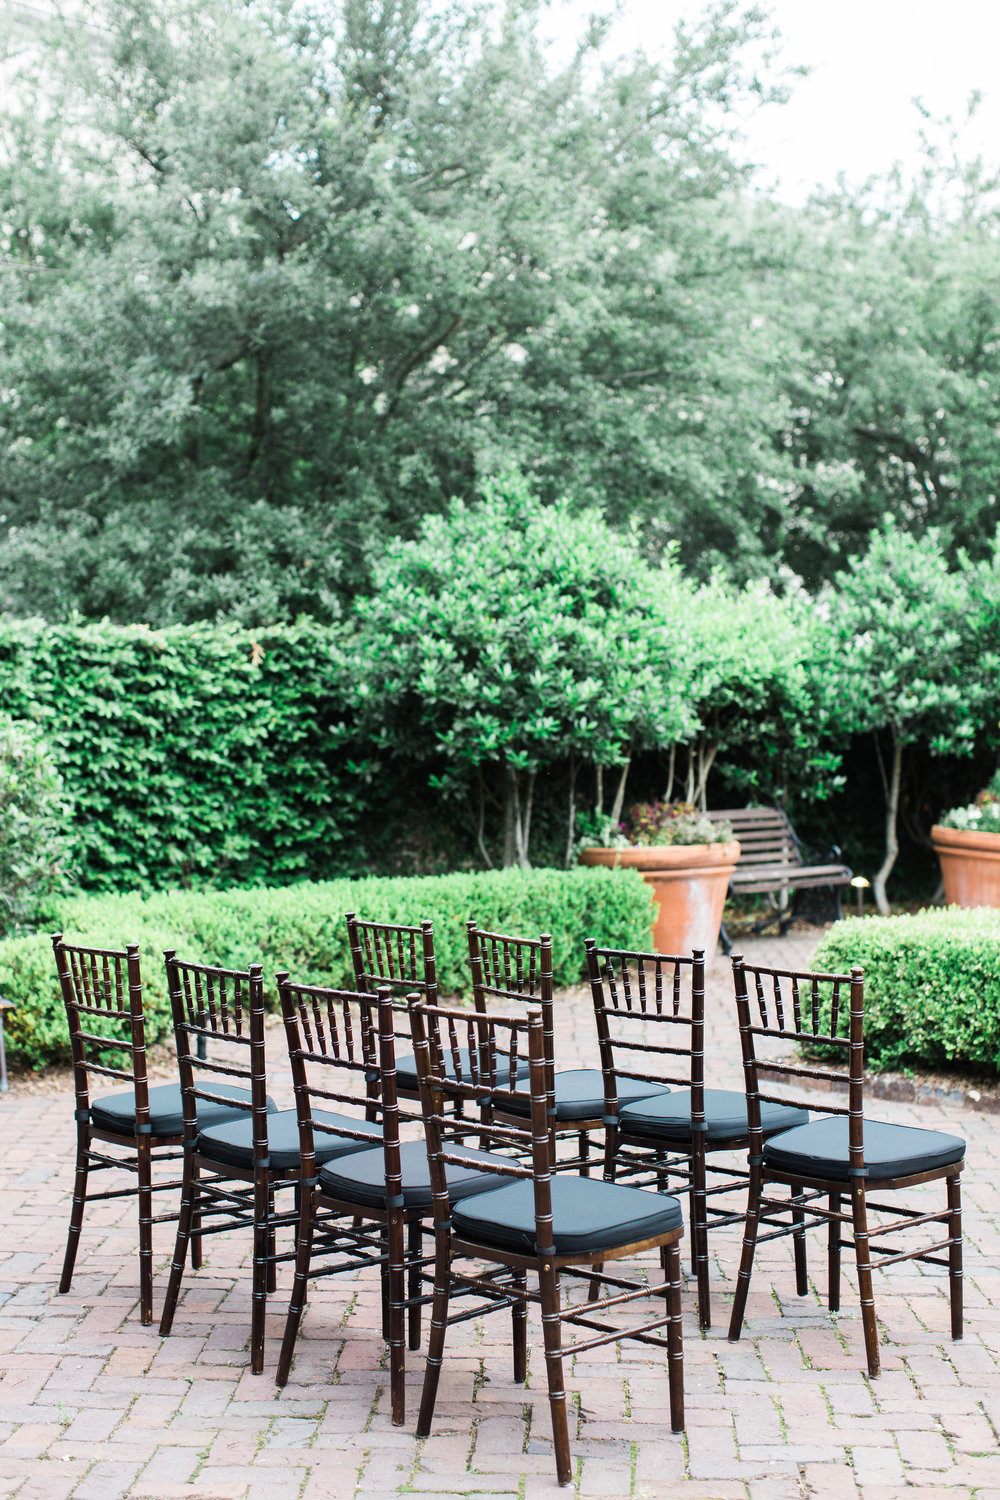 harper-fowlkes-house-wedding-ivory-and-beau-savannah-wedding-planner-savannah-event-designer-savannah-wedding-florist-historic-home-wedding-in-savannah-georgia-destination-wedding-planner-2.jpg